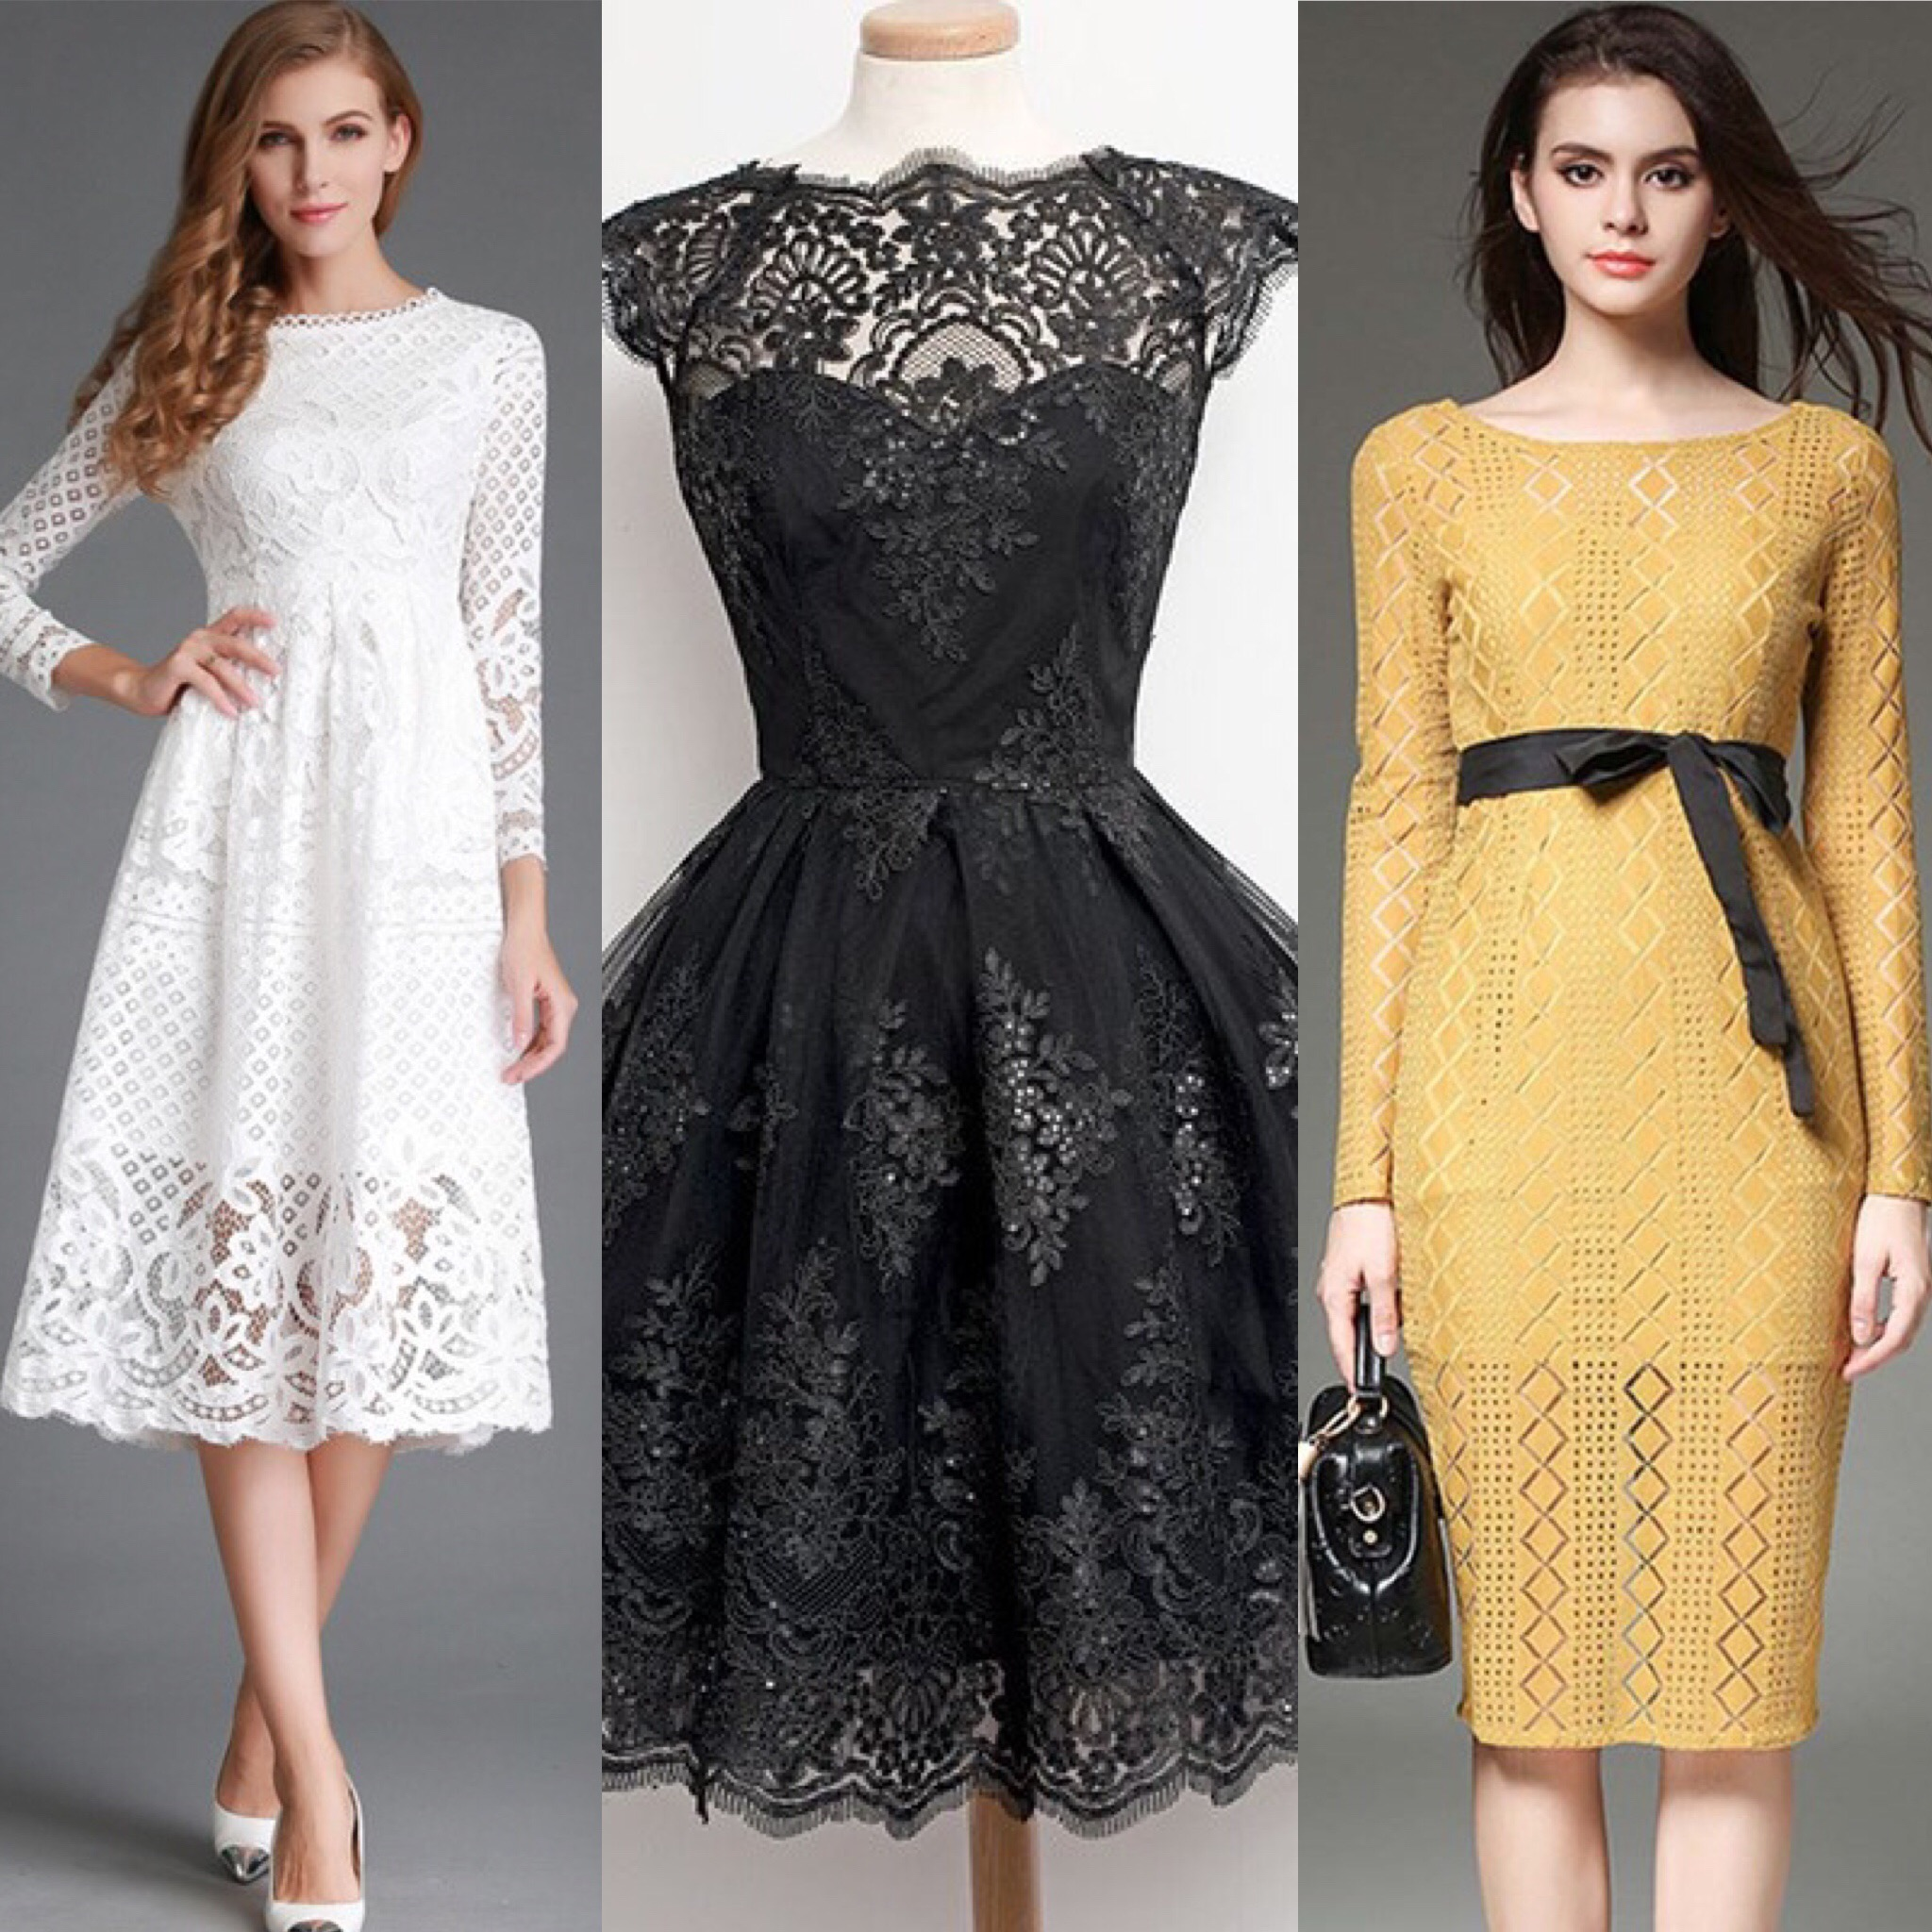 ADVERTORIAL: NEW YEAR'S EVE STYLE WITH ERICDRESS.